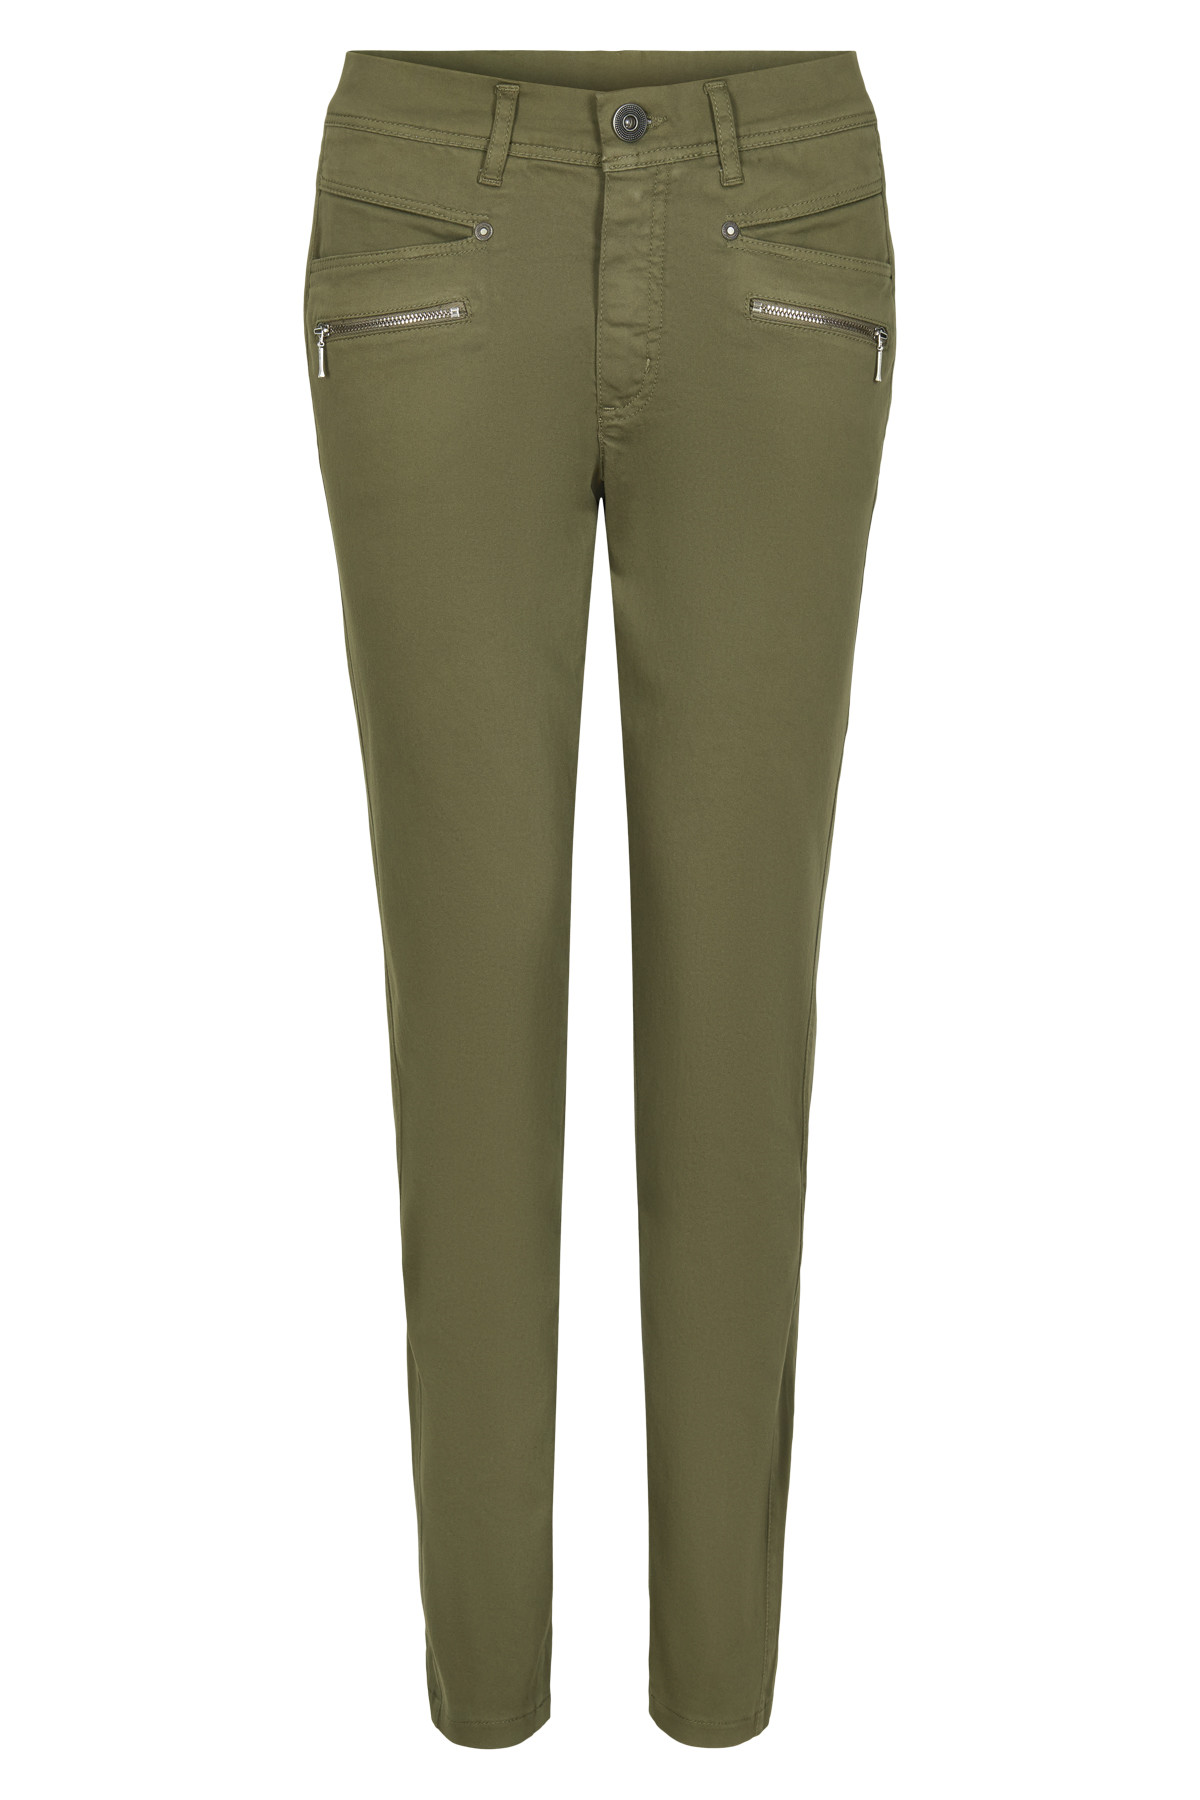 Image of 2BIZ RANY PANTS 43654 (Khaki, 38)